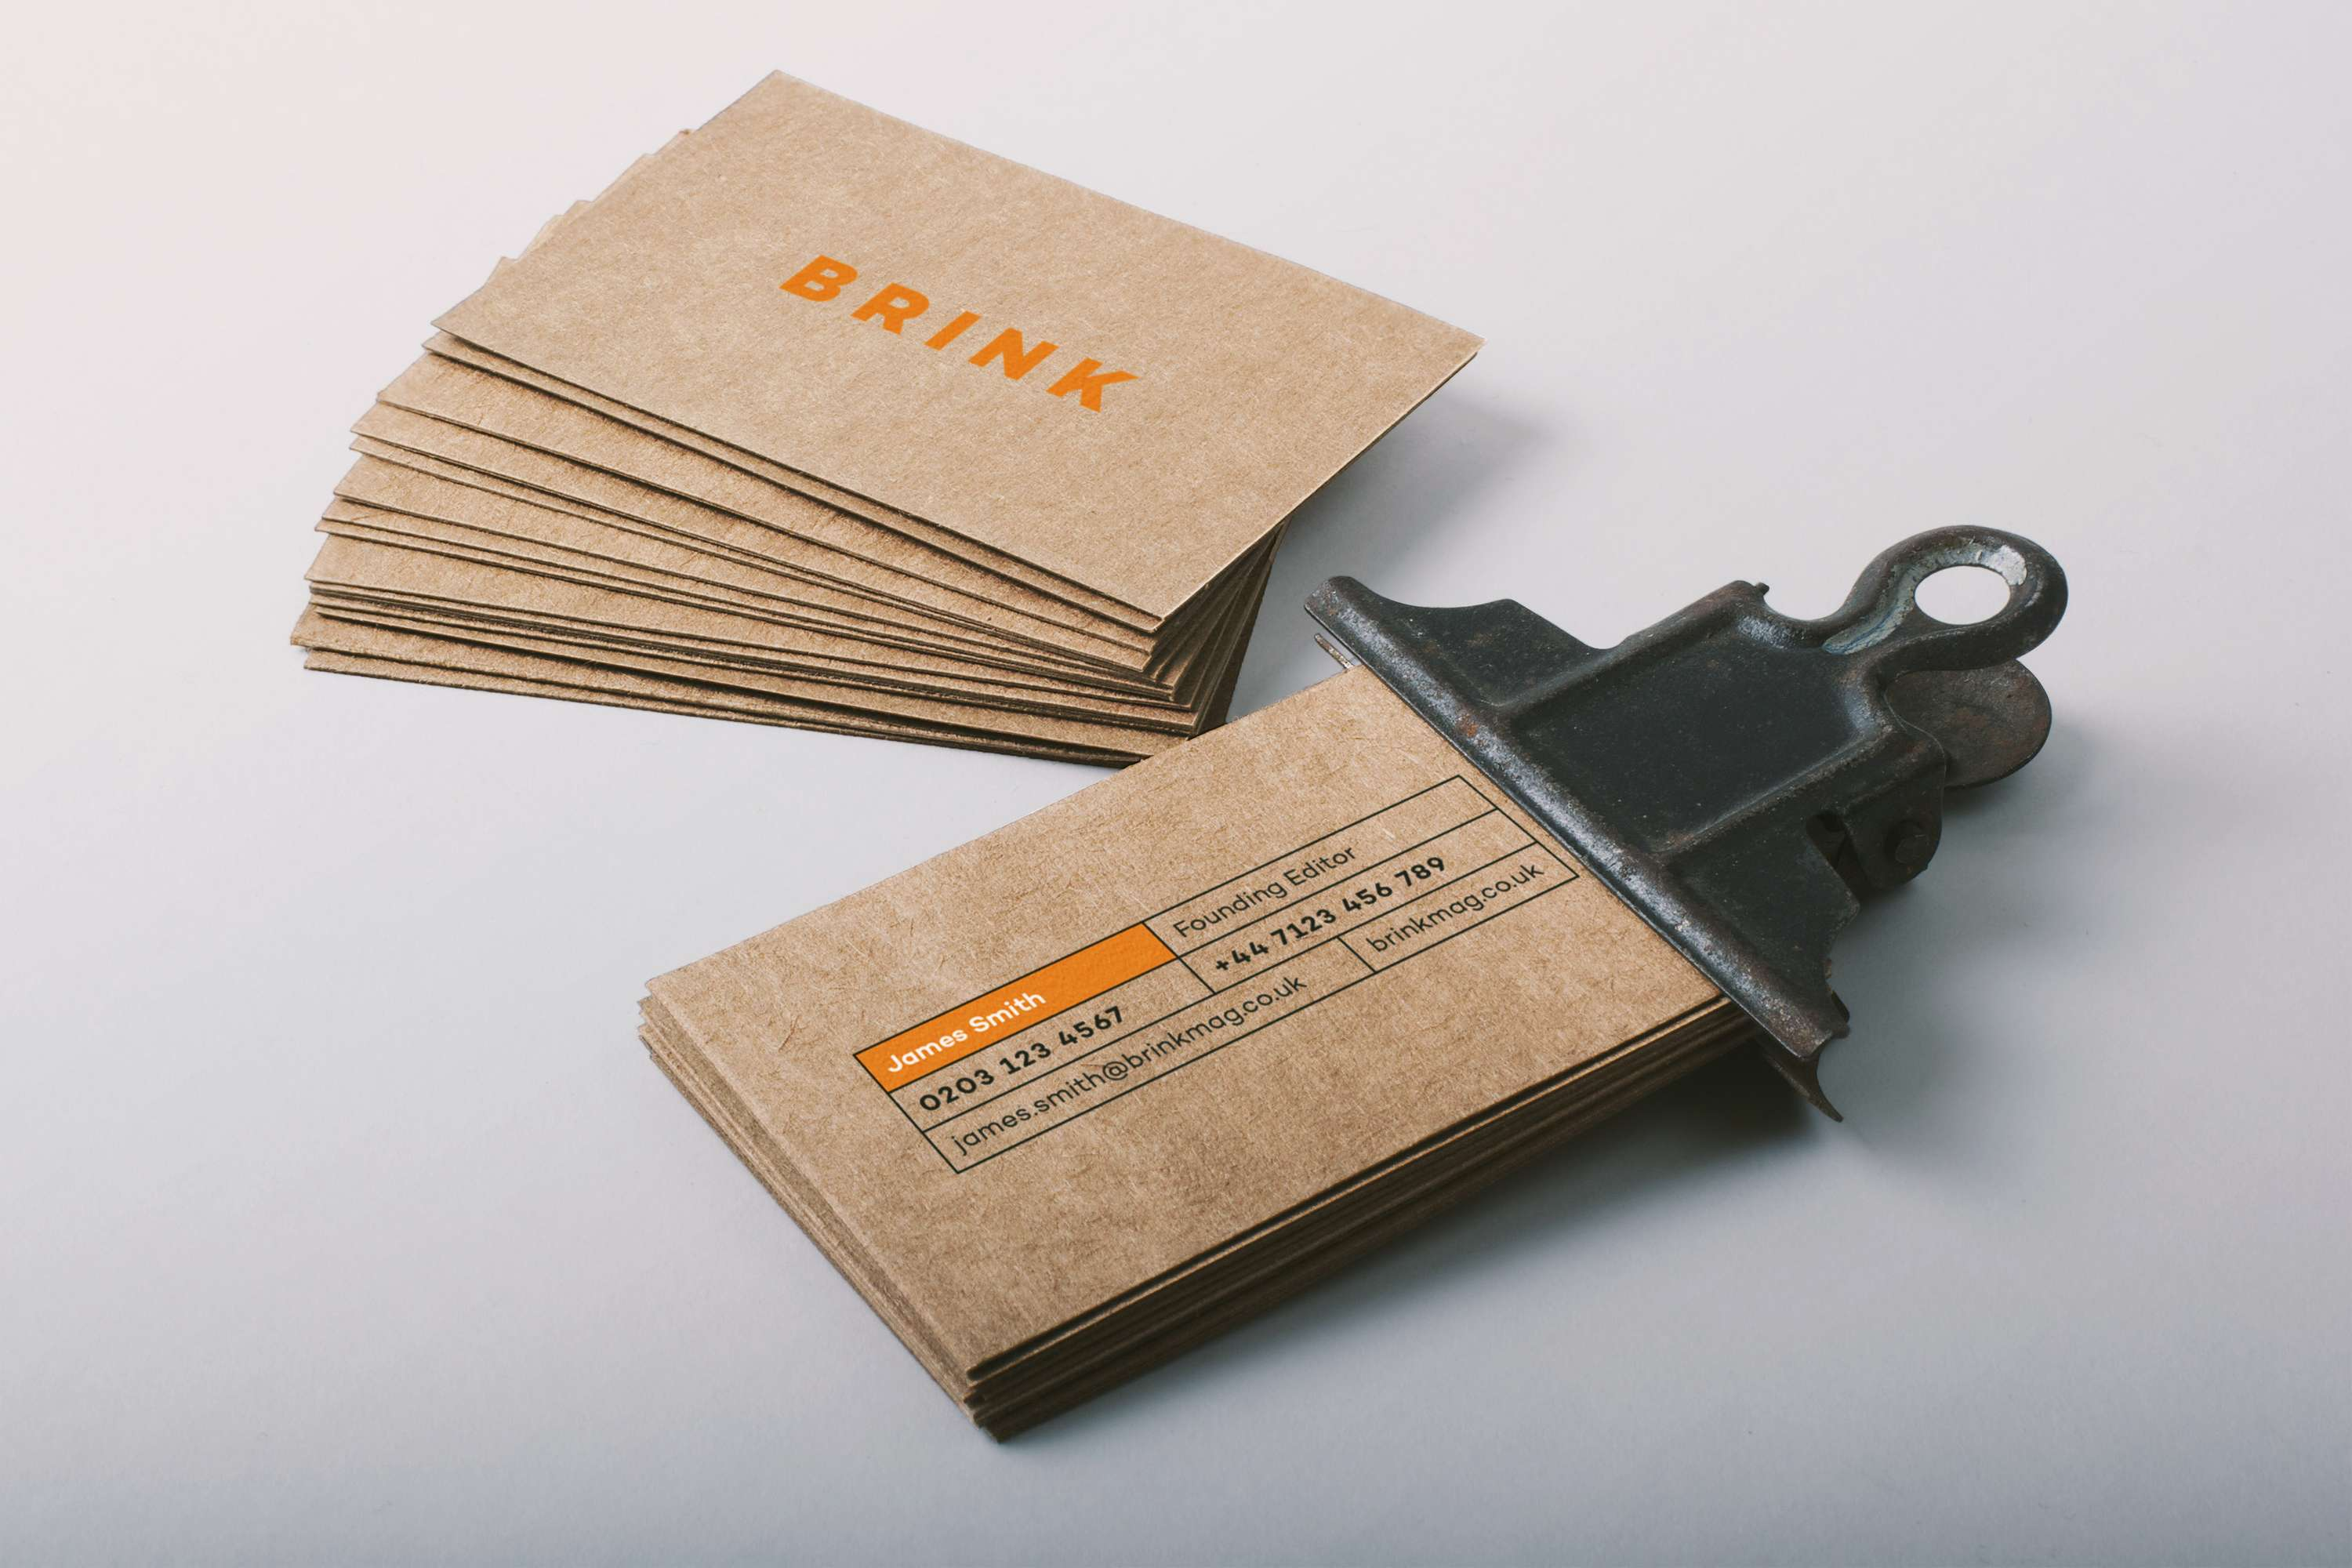 Brink magazine sustainable business cards the dots brink magazine sustainable business cards colourmoves